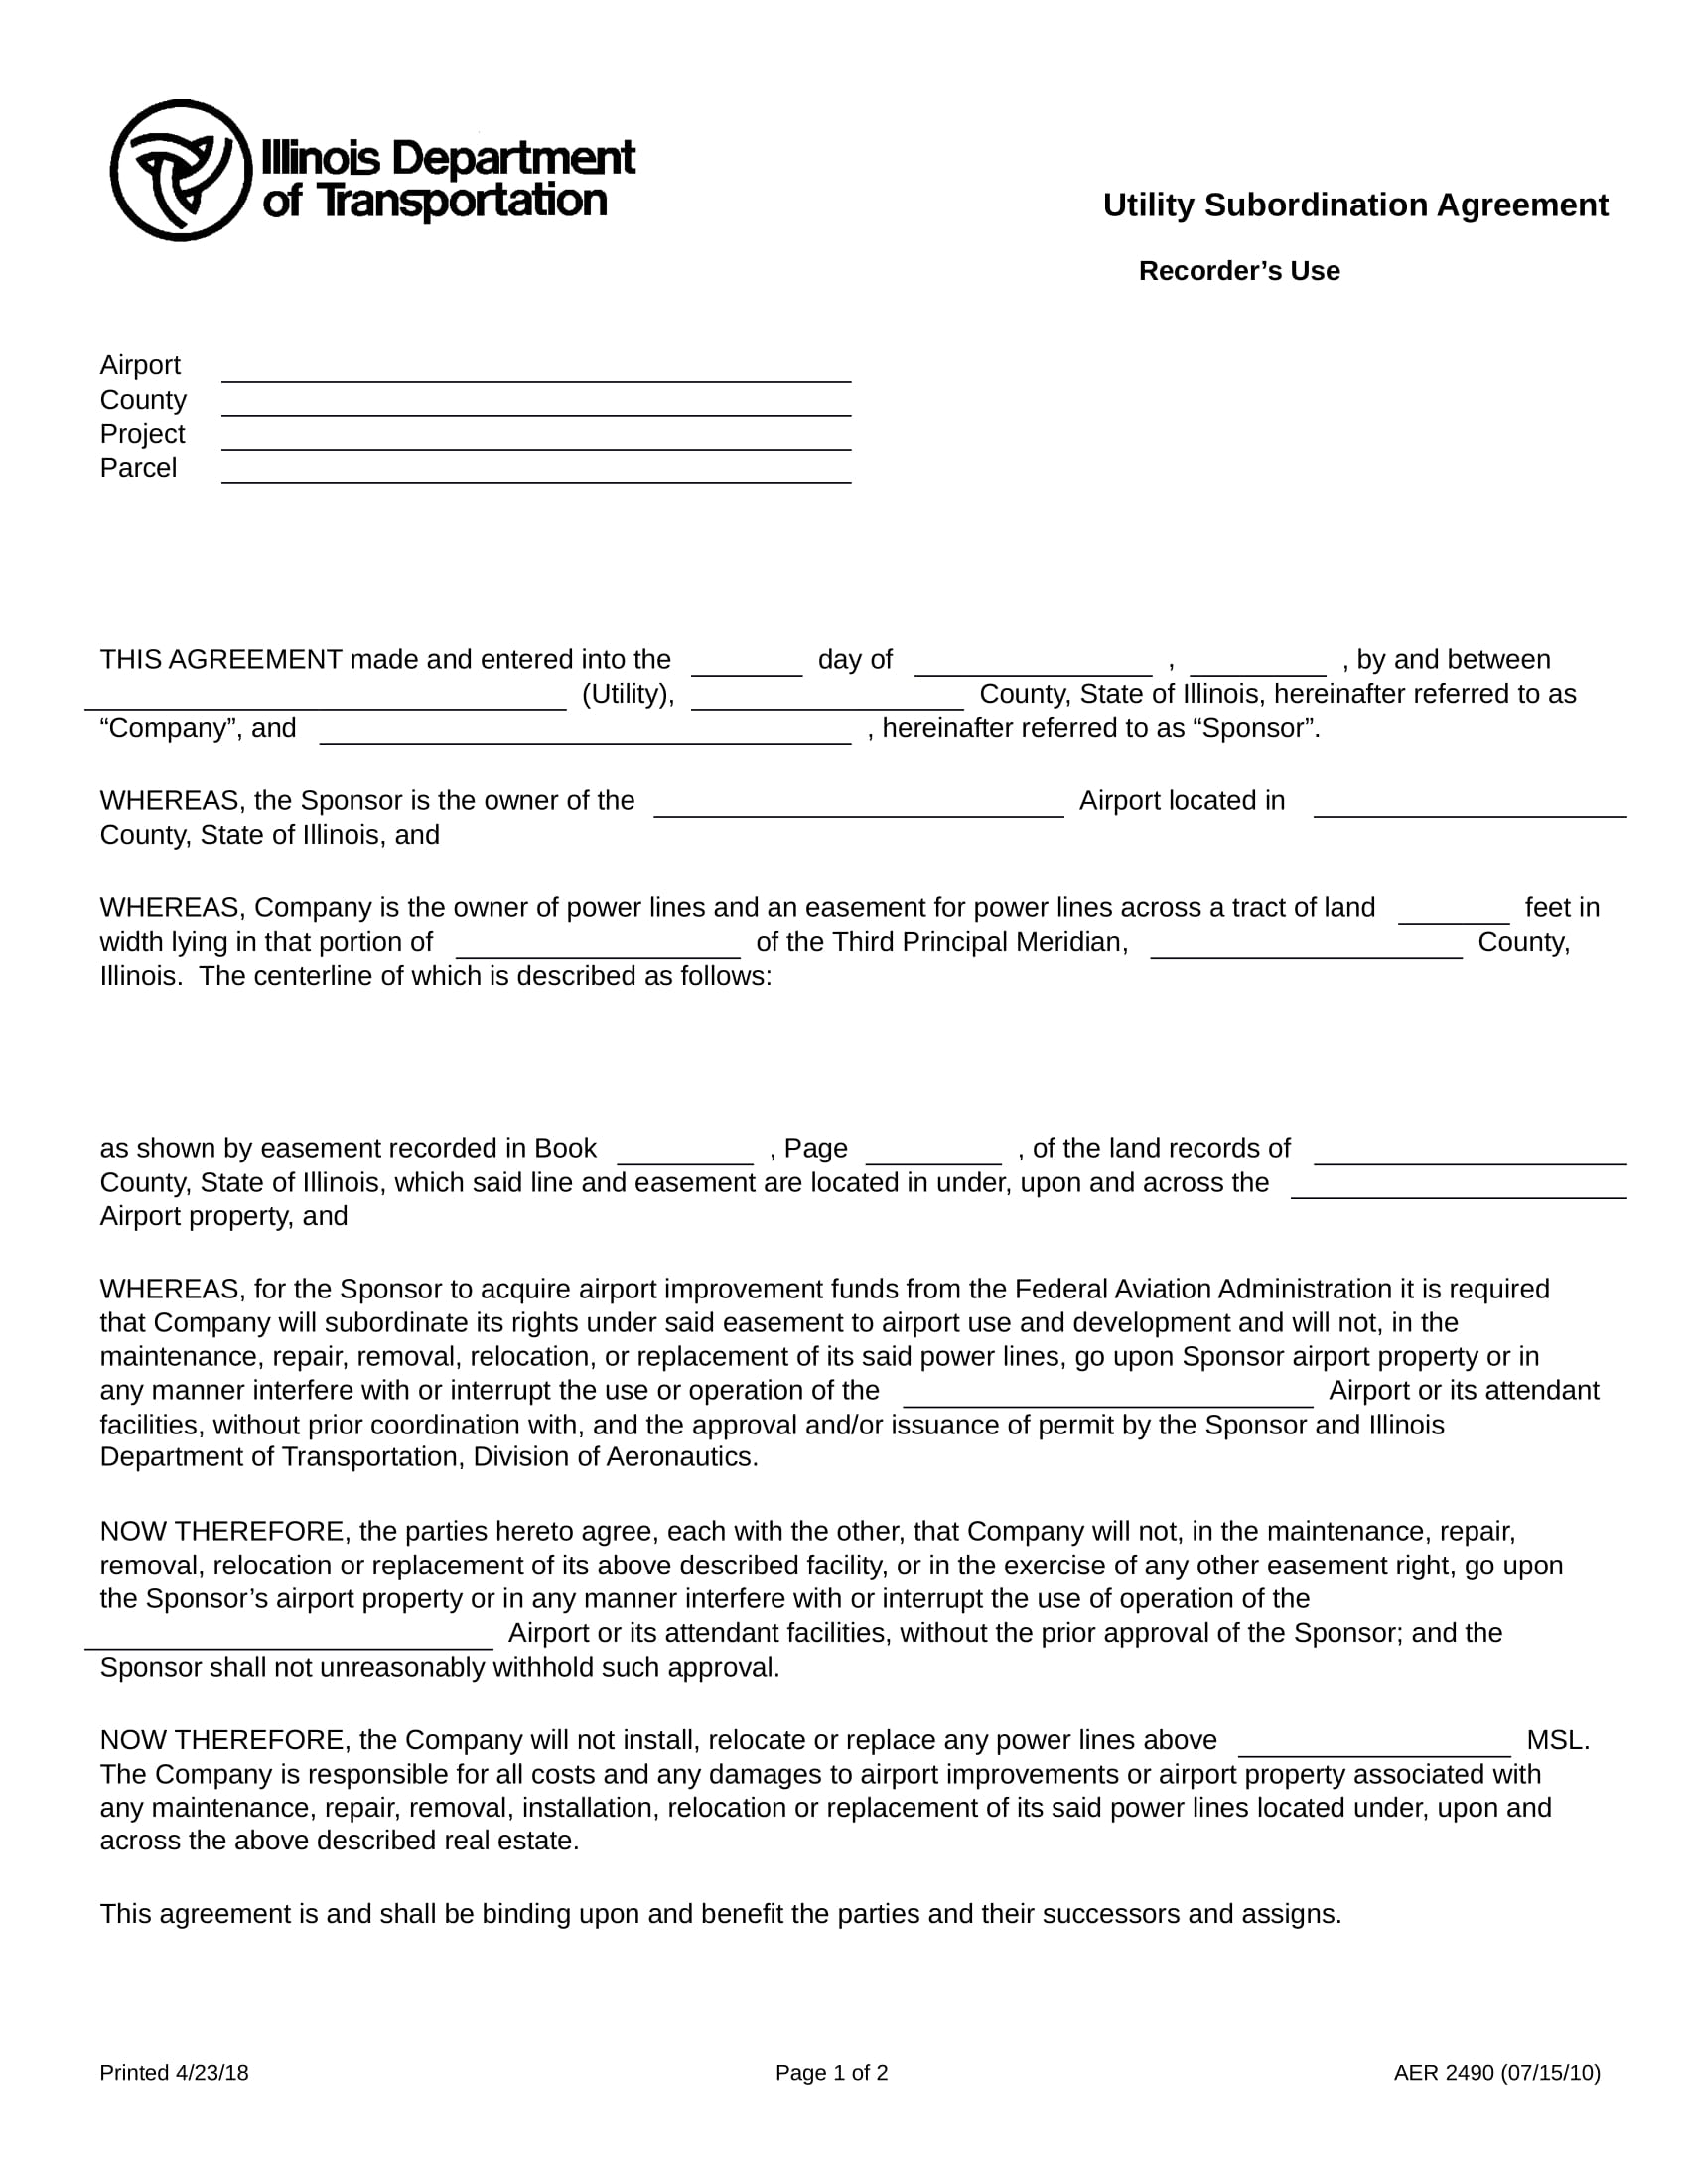 utility subordination agreement contract form in doc 1